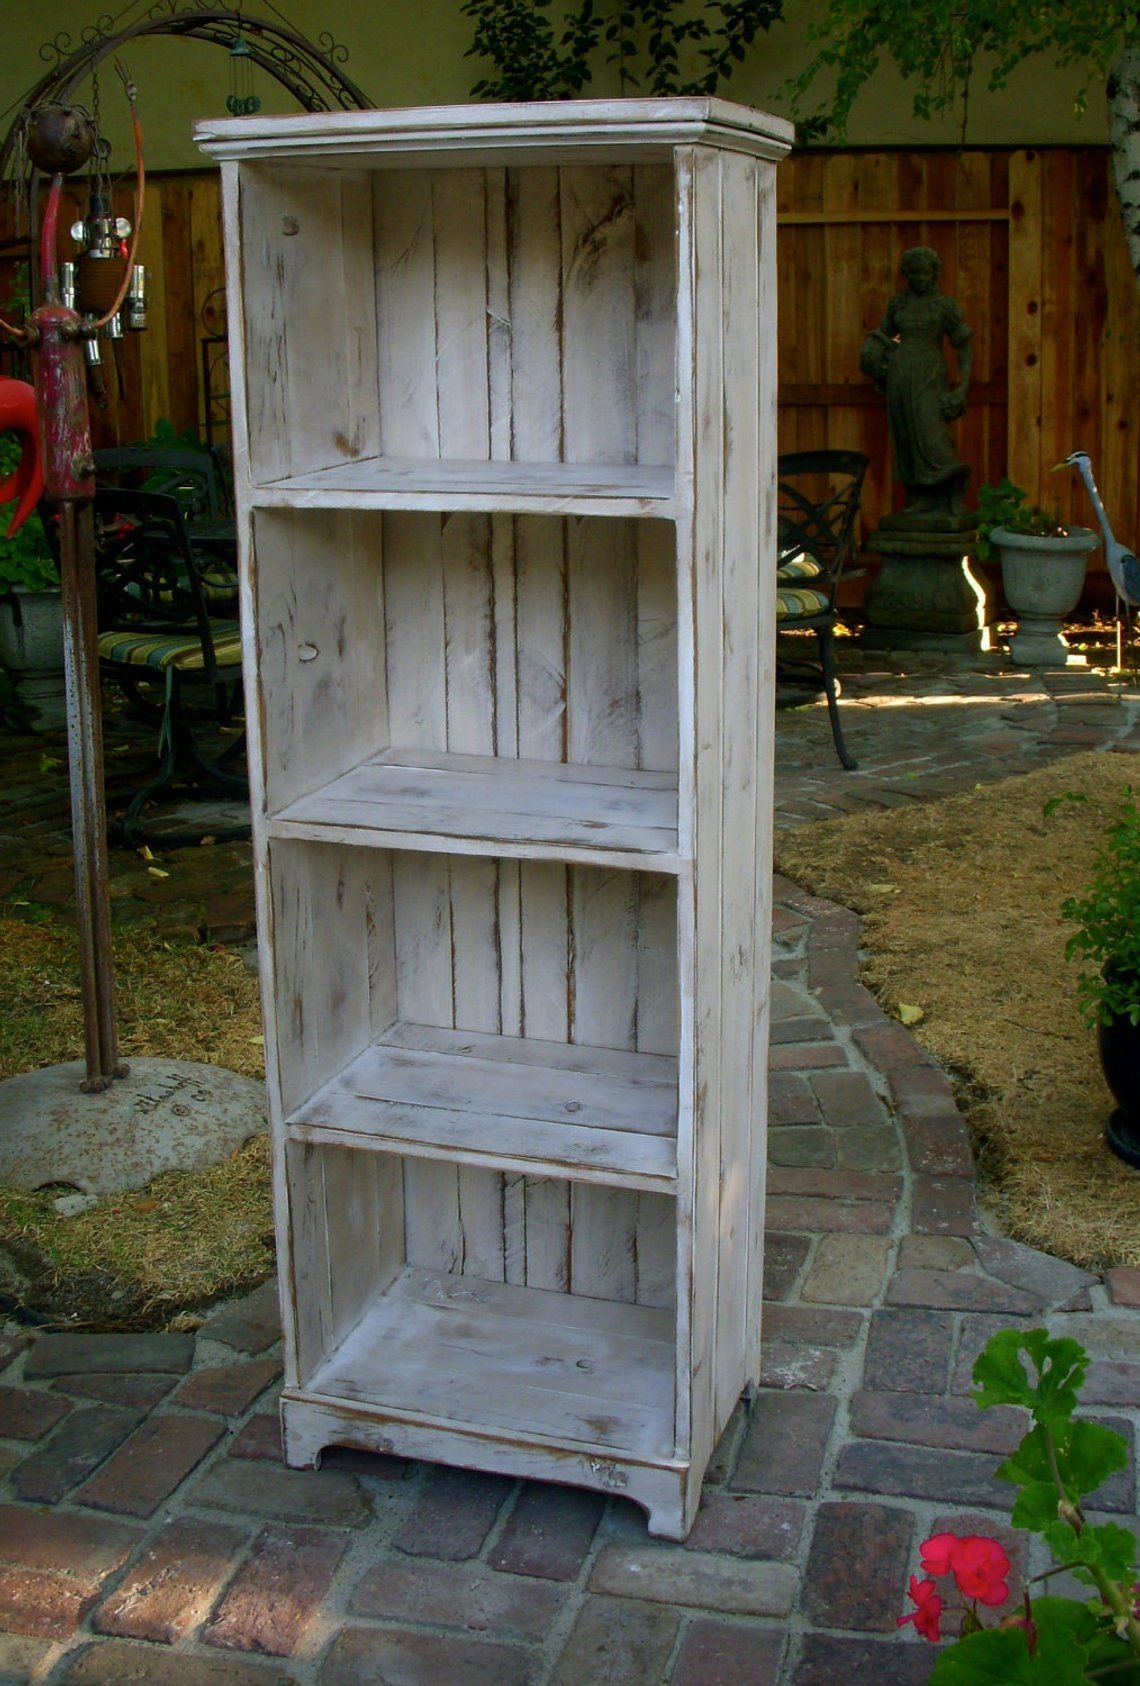 Wooden shelf rustic shabby furniture